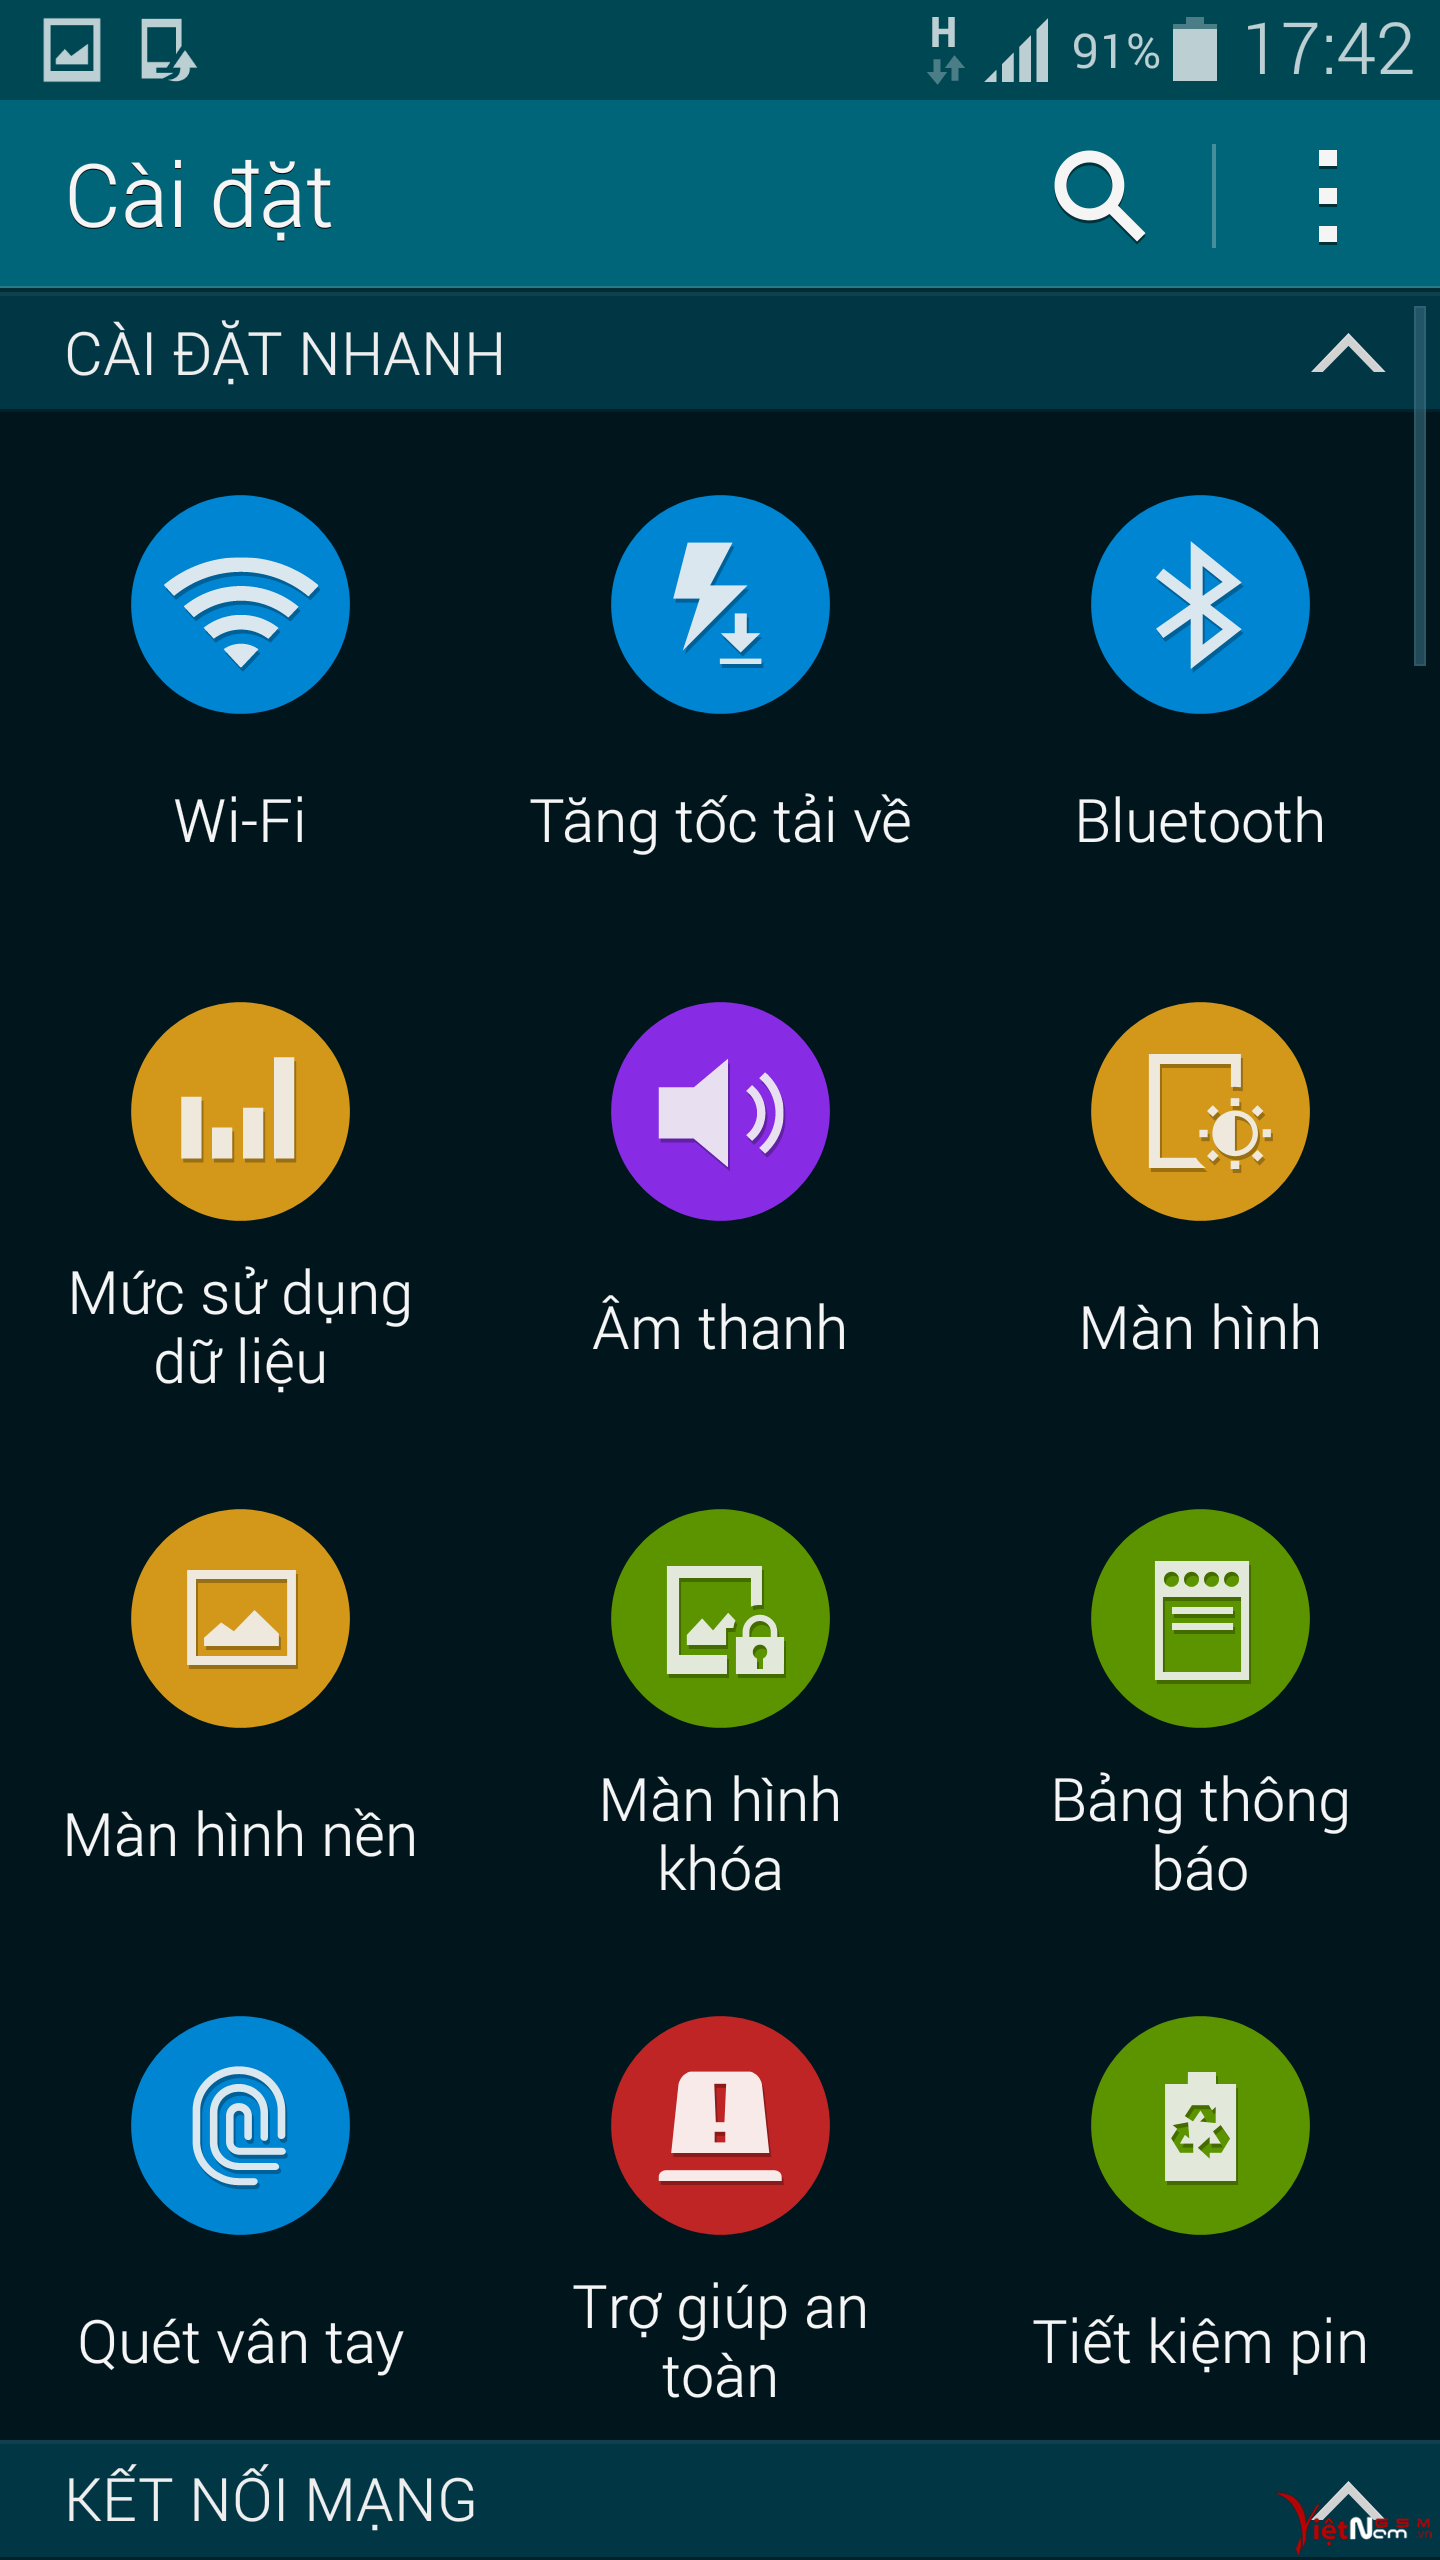 Screenshot_2014-12-21-17-42-56.png